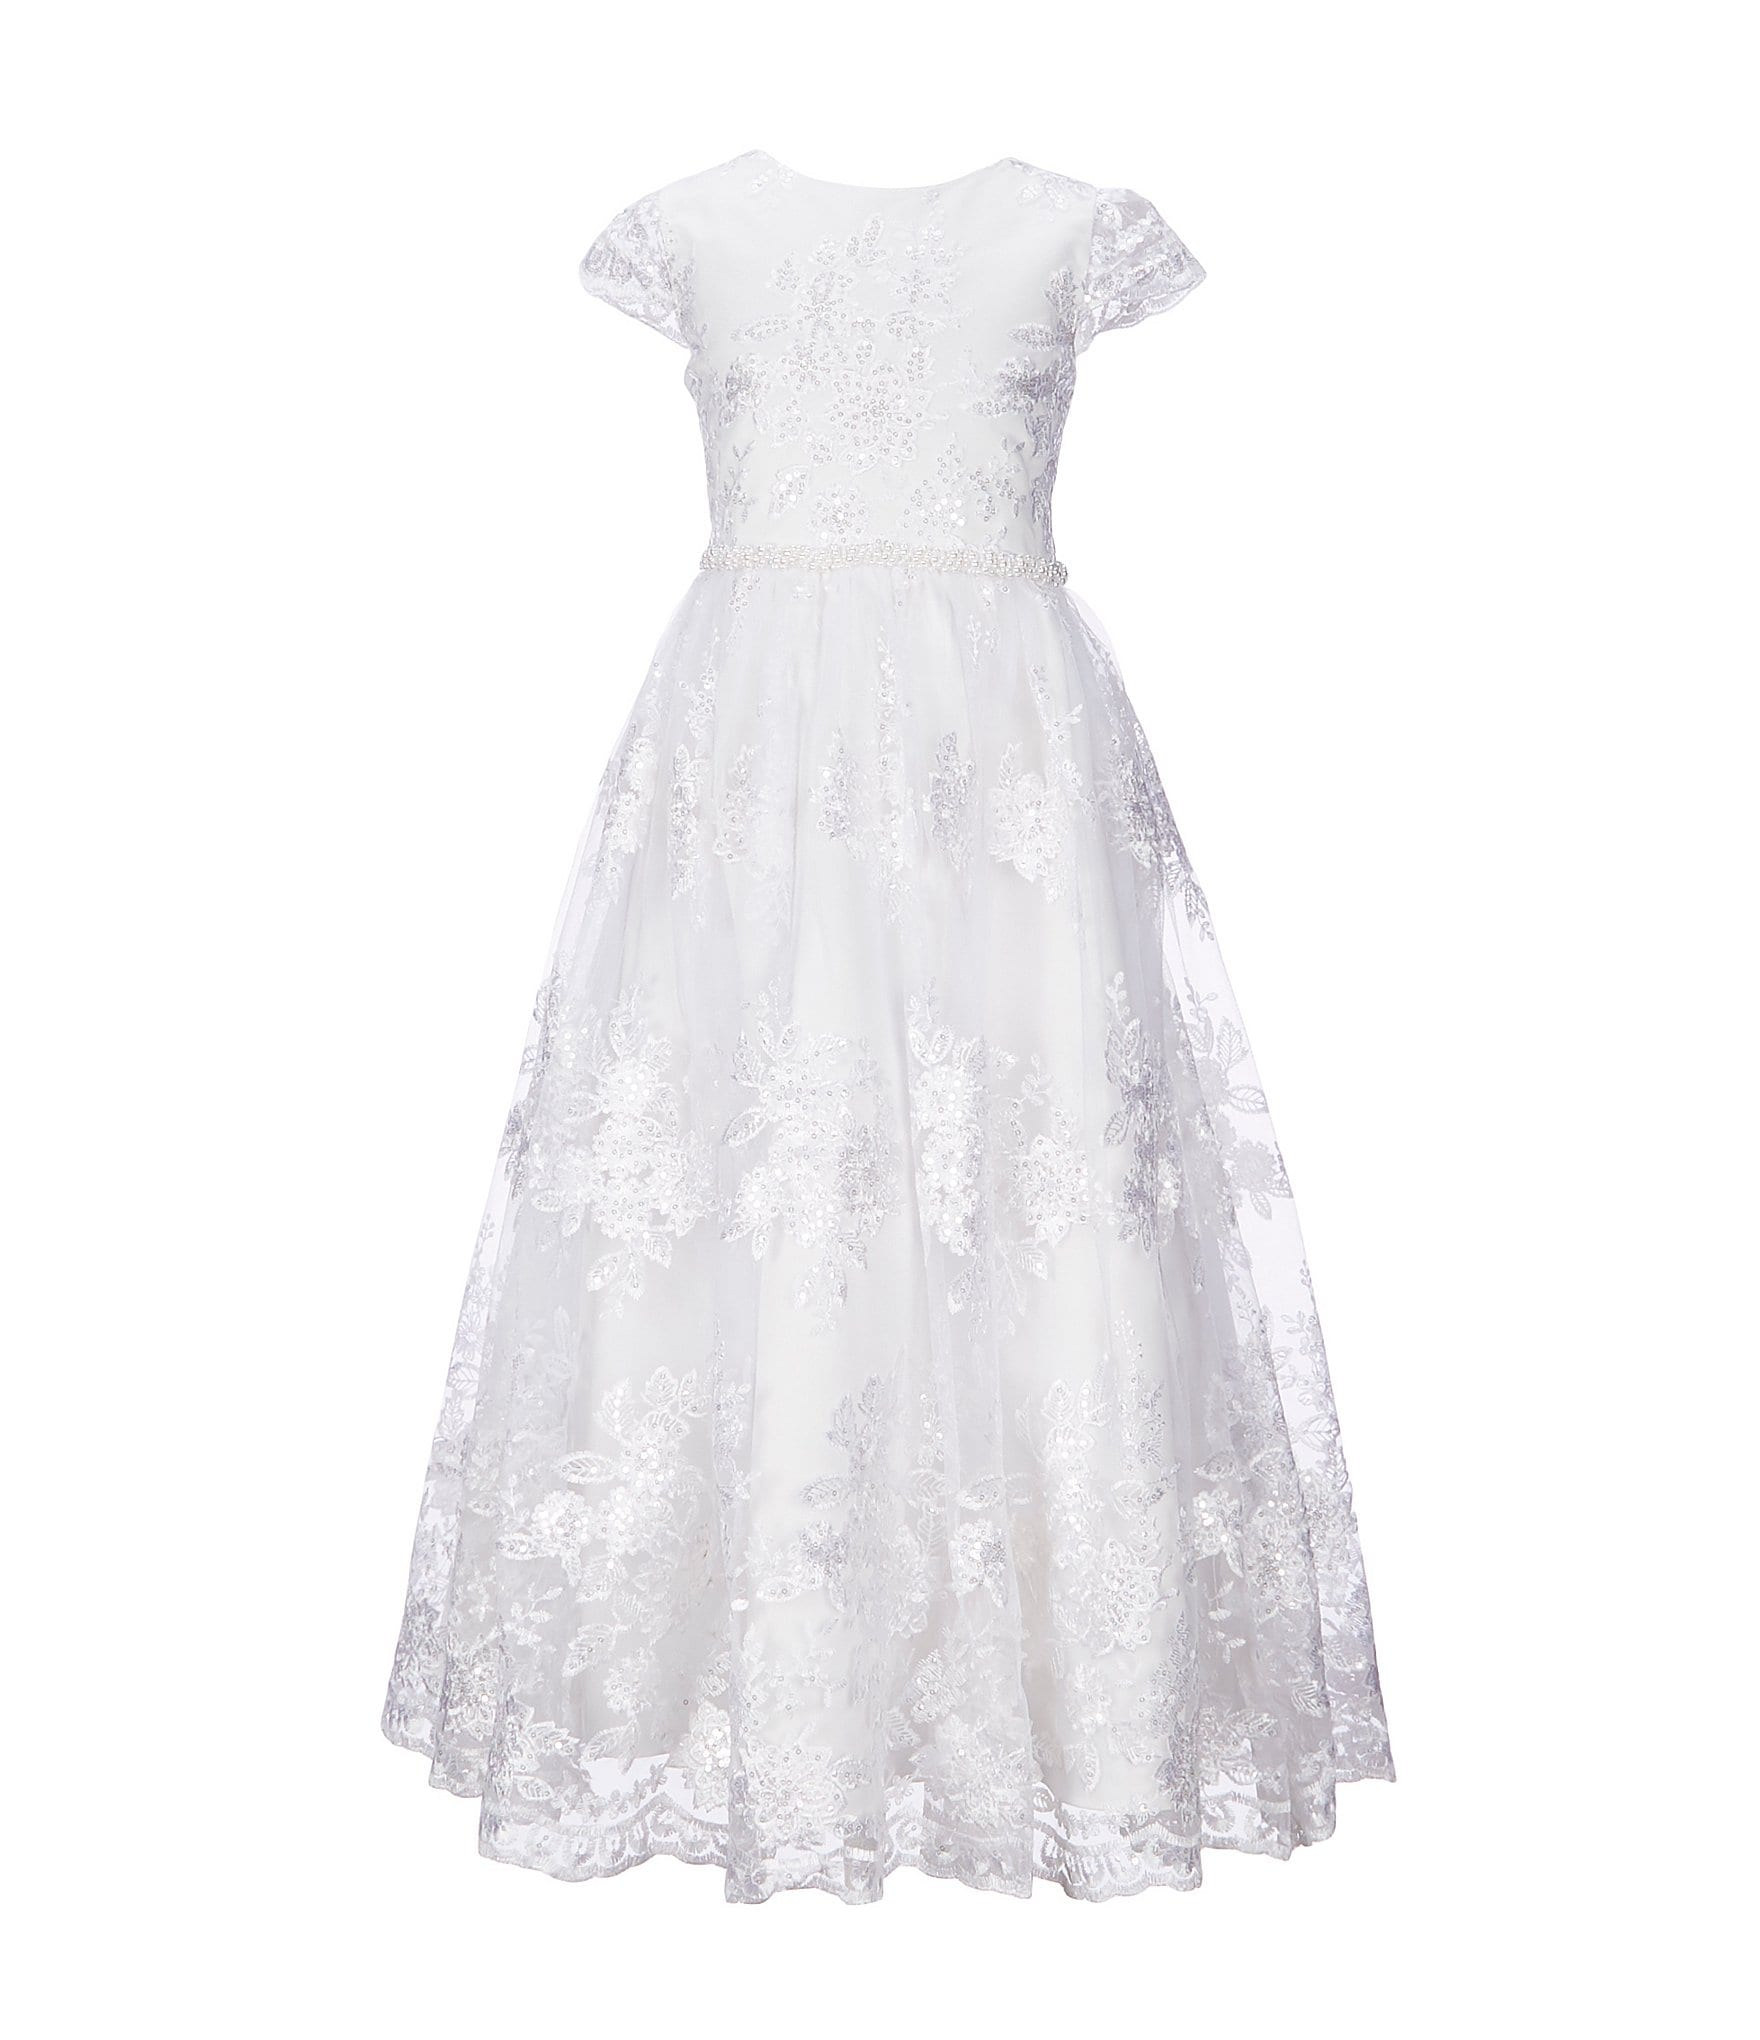 9b05f420ef69 Girls  Special Occasion Dresses 7-16